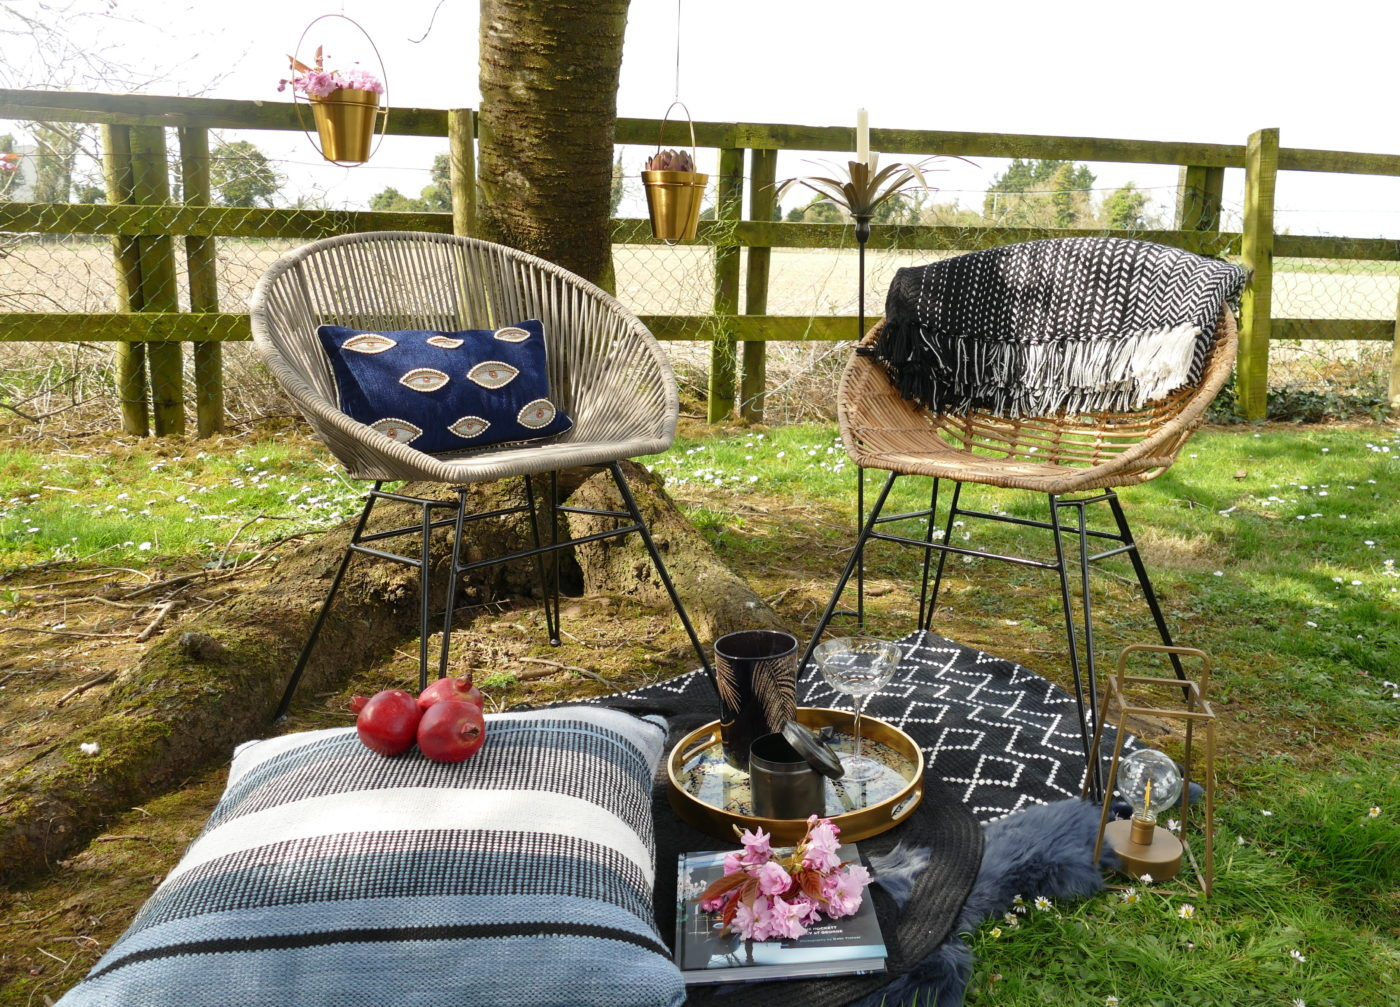 outdoor chairs on blanket with cushion